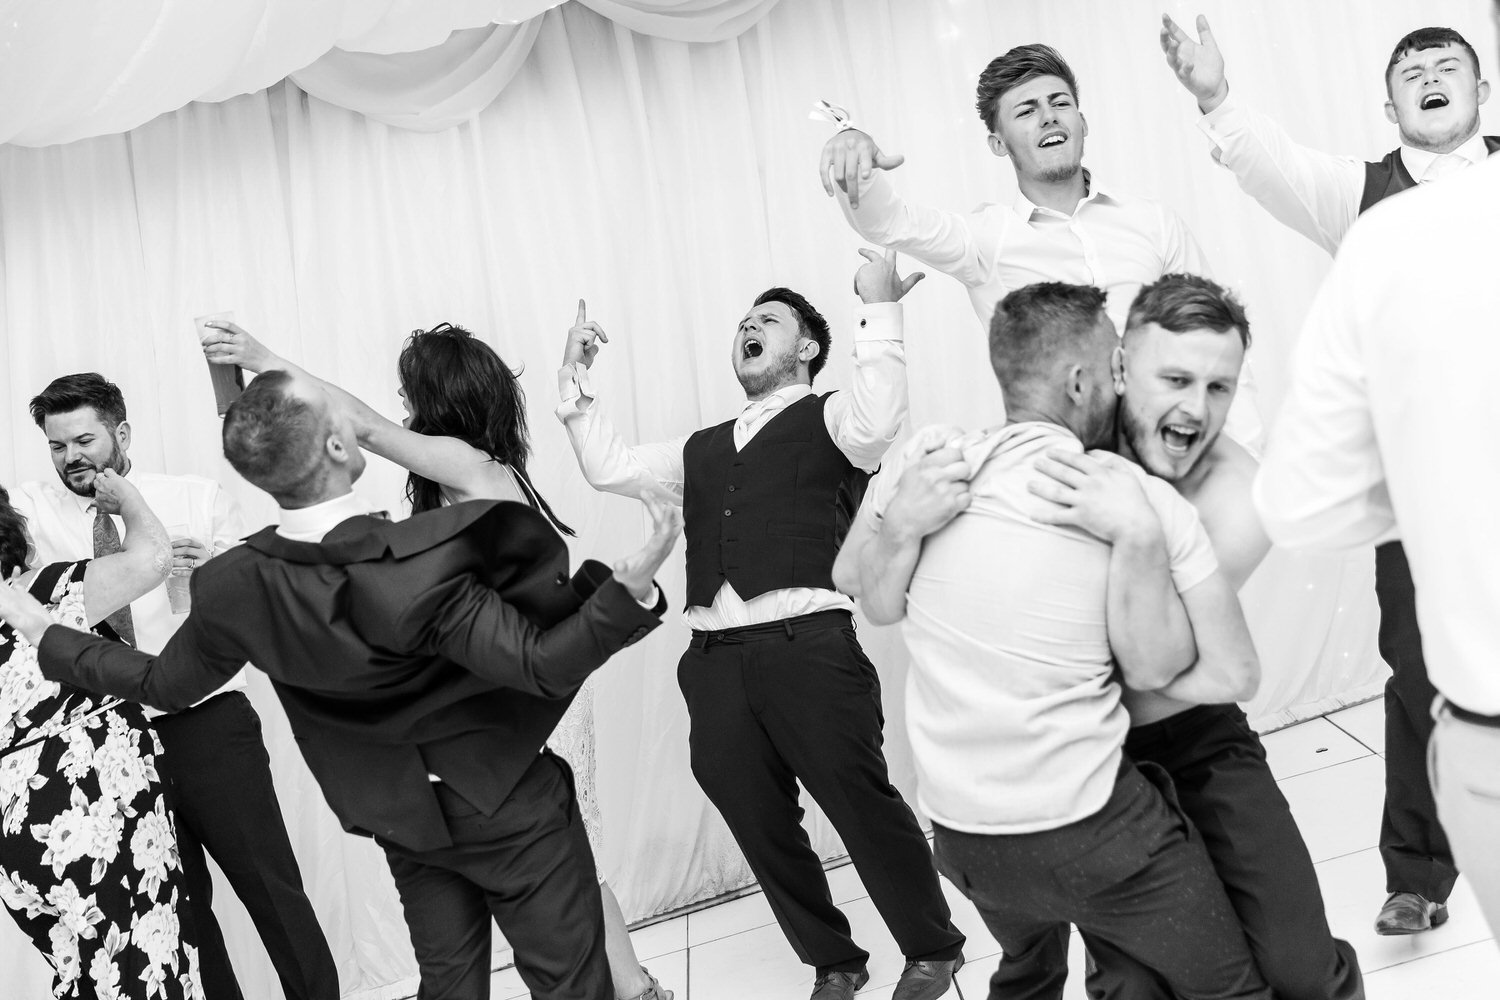 dancefloor party at lakeside venue wedding